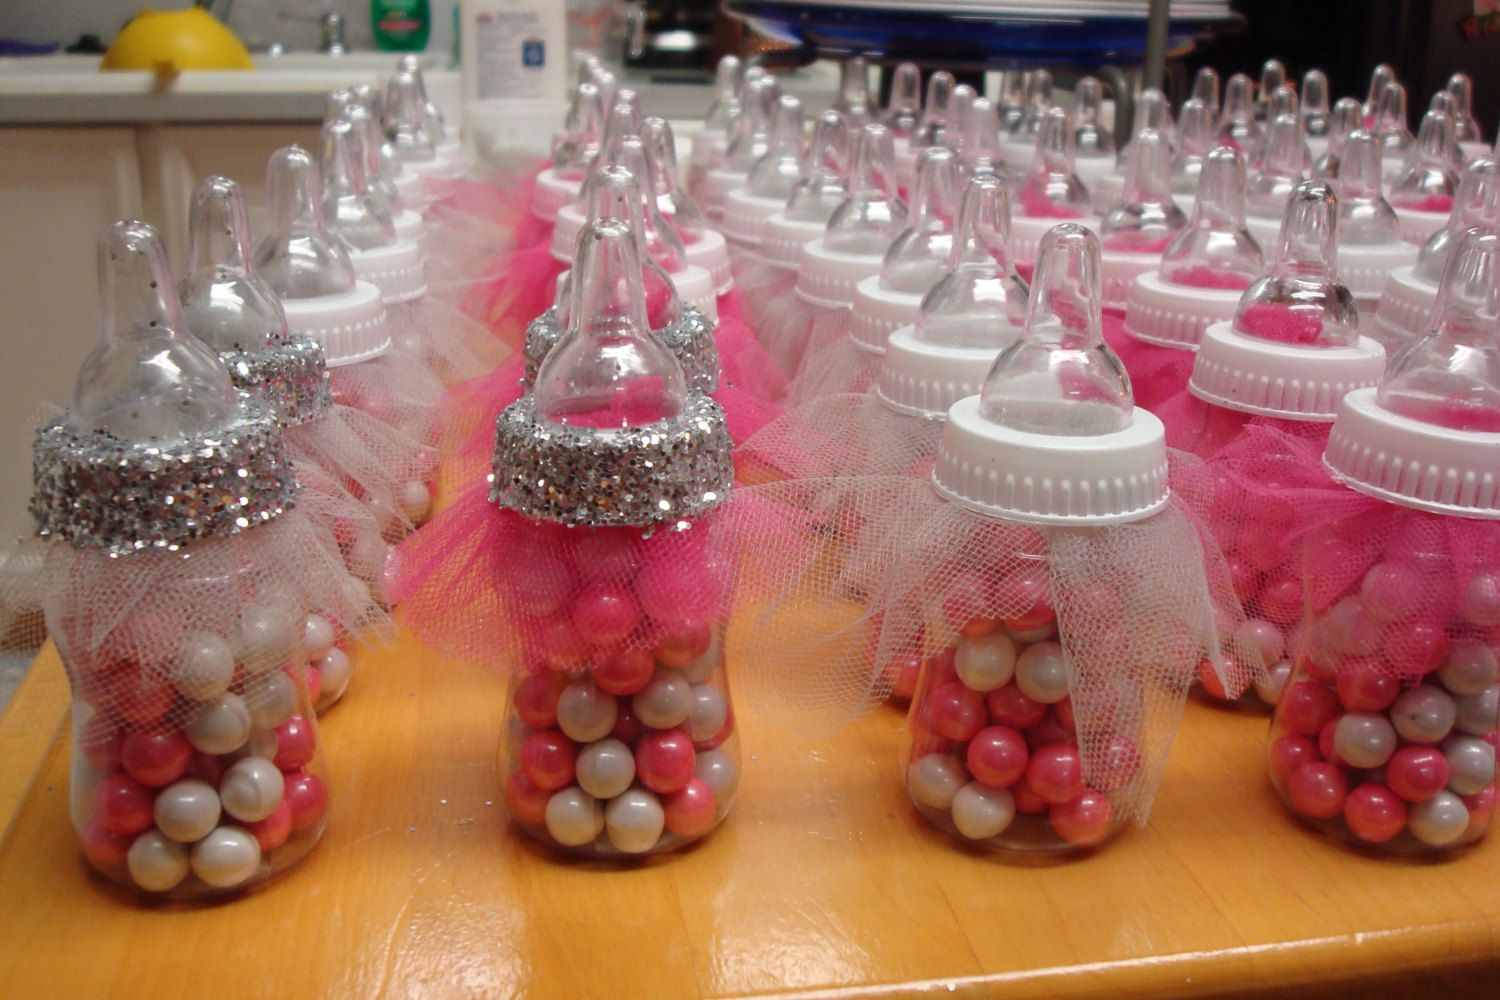 f2998fbf1 Tutu Baby Bottle Favors; Fancy Baby Shower Favors; Ballerina Theme Shower;  Princess Themed Shower; Table Decorations; Fancy Favors for Guest by ...